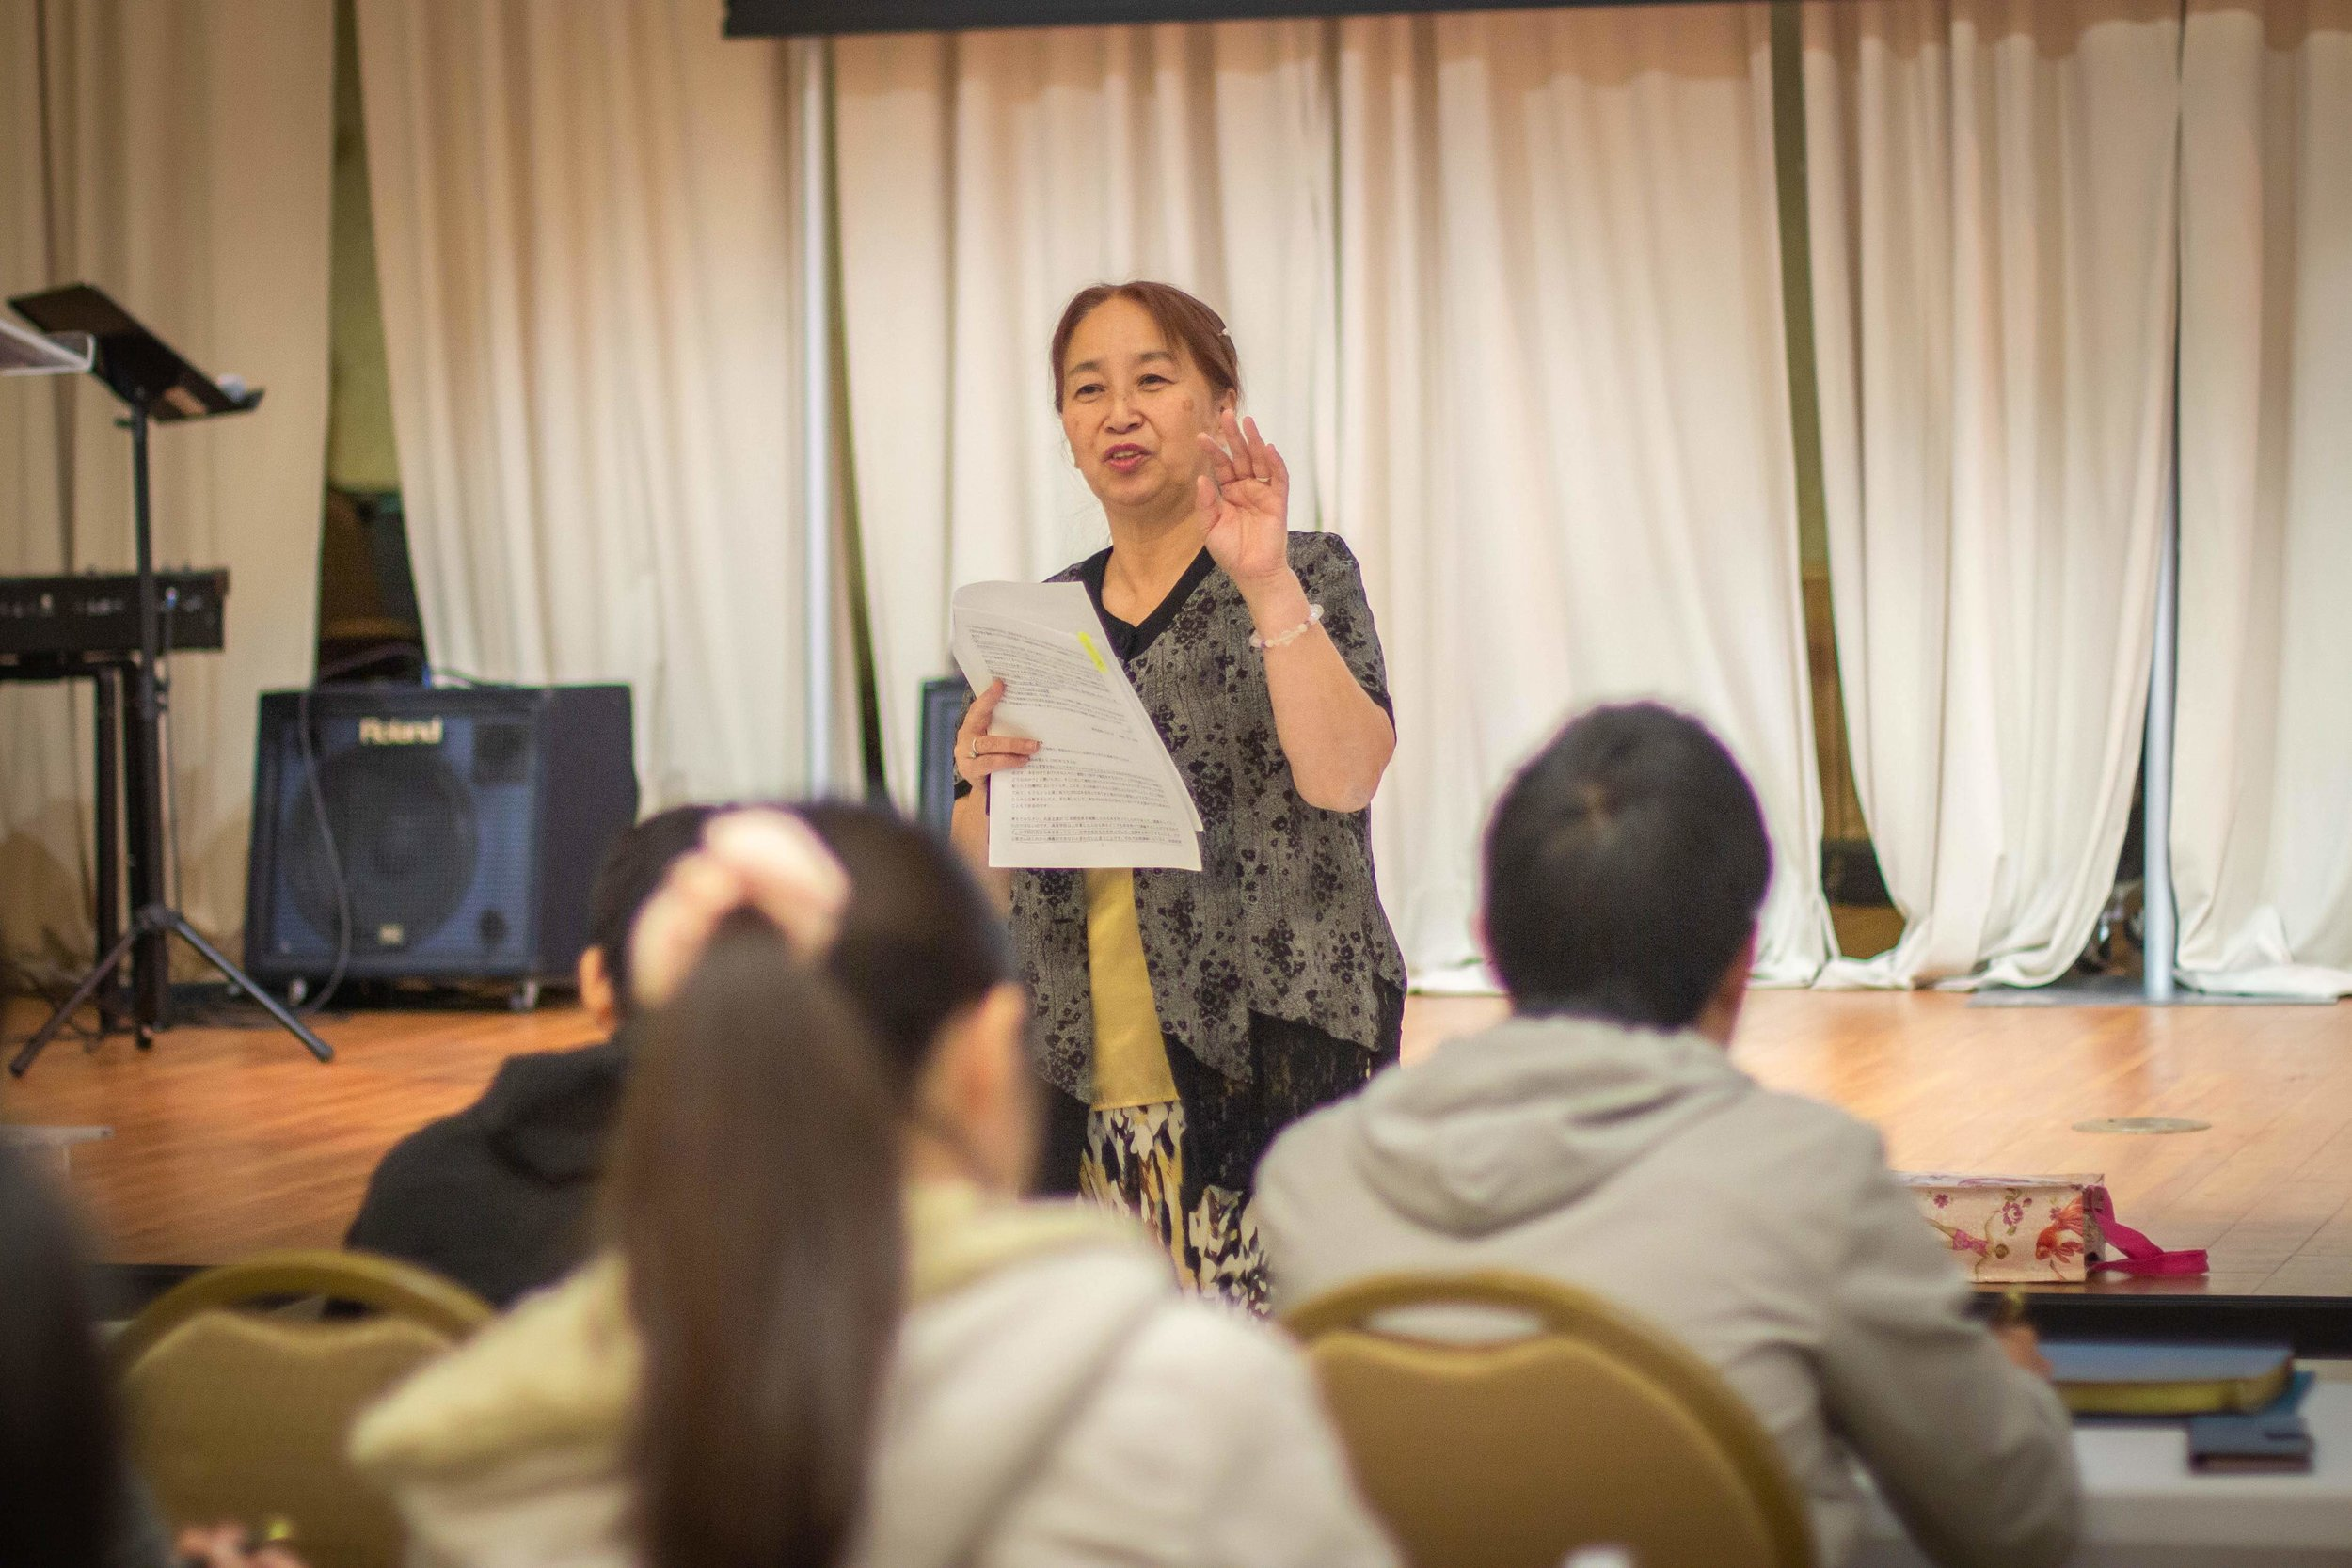 Naoko Hiraki shares her life testimony and turning point.